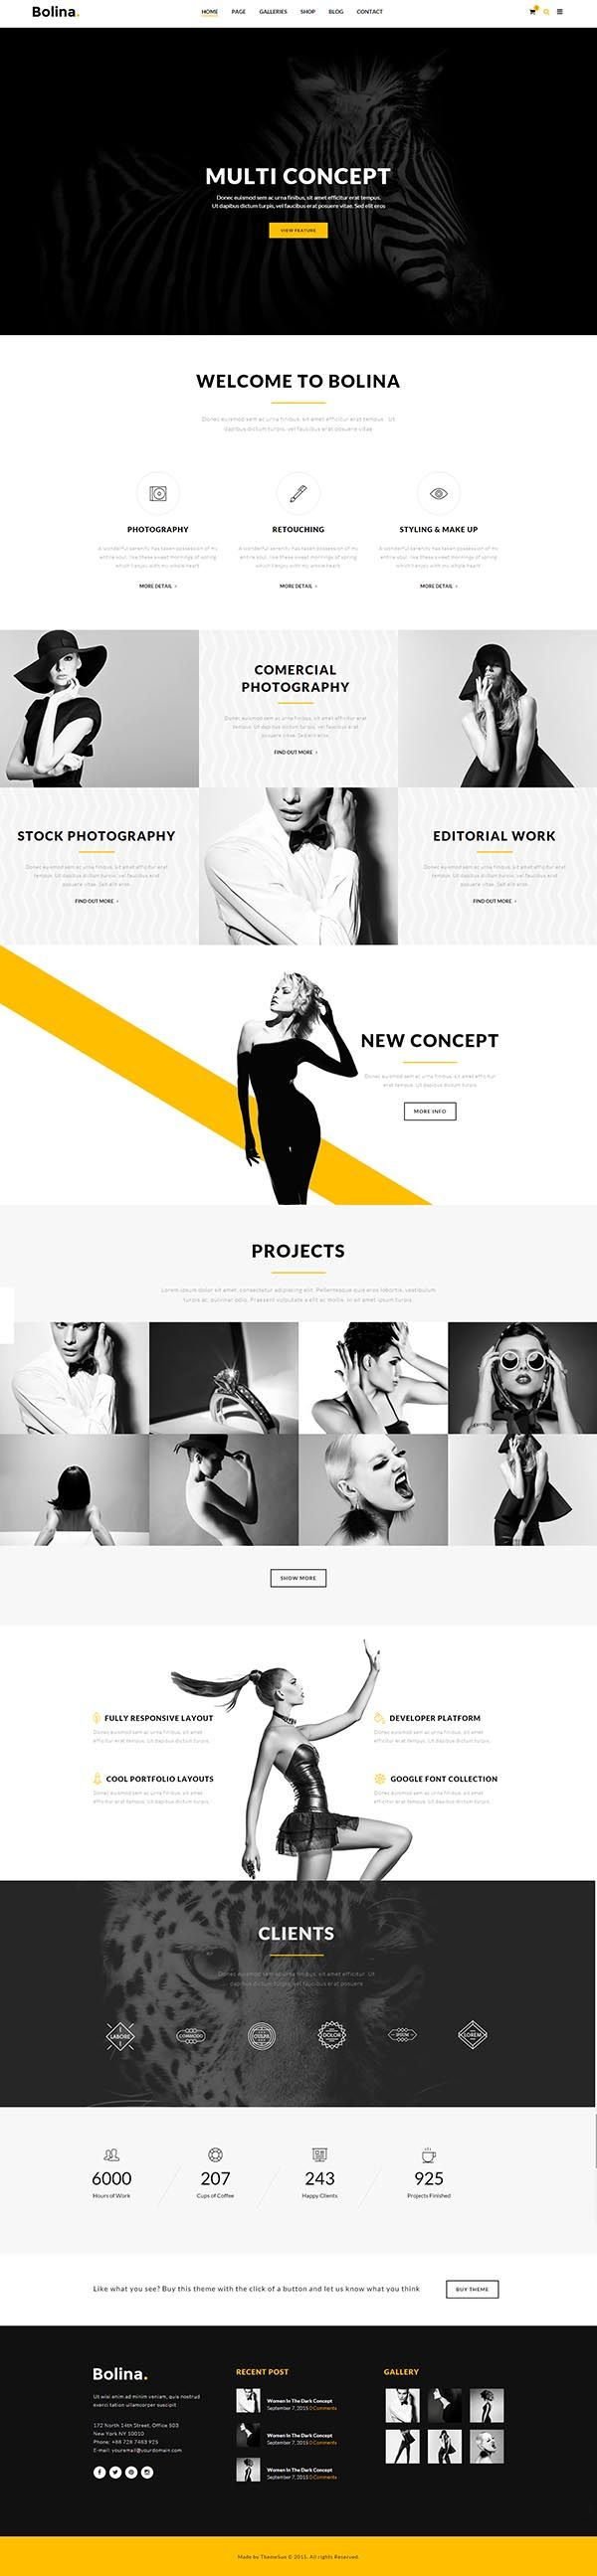 Bolina – Multipurpose WordPress Theme